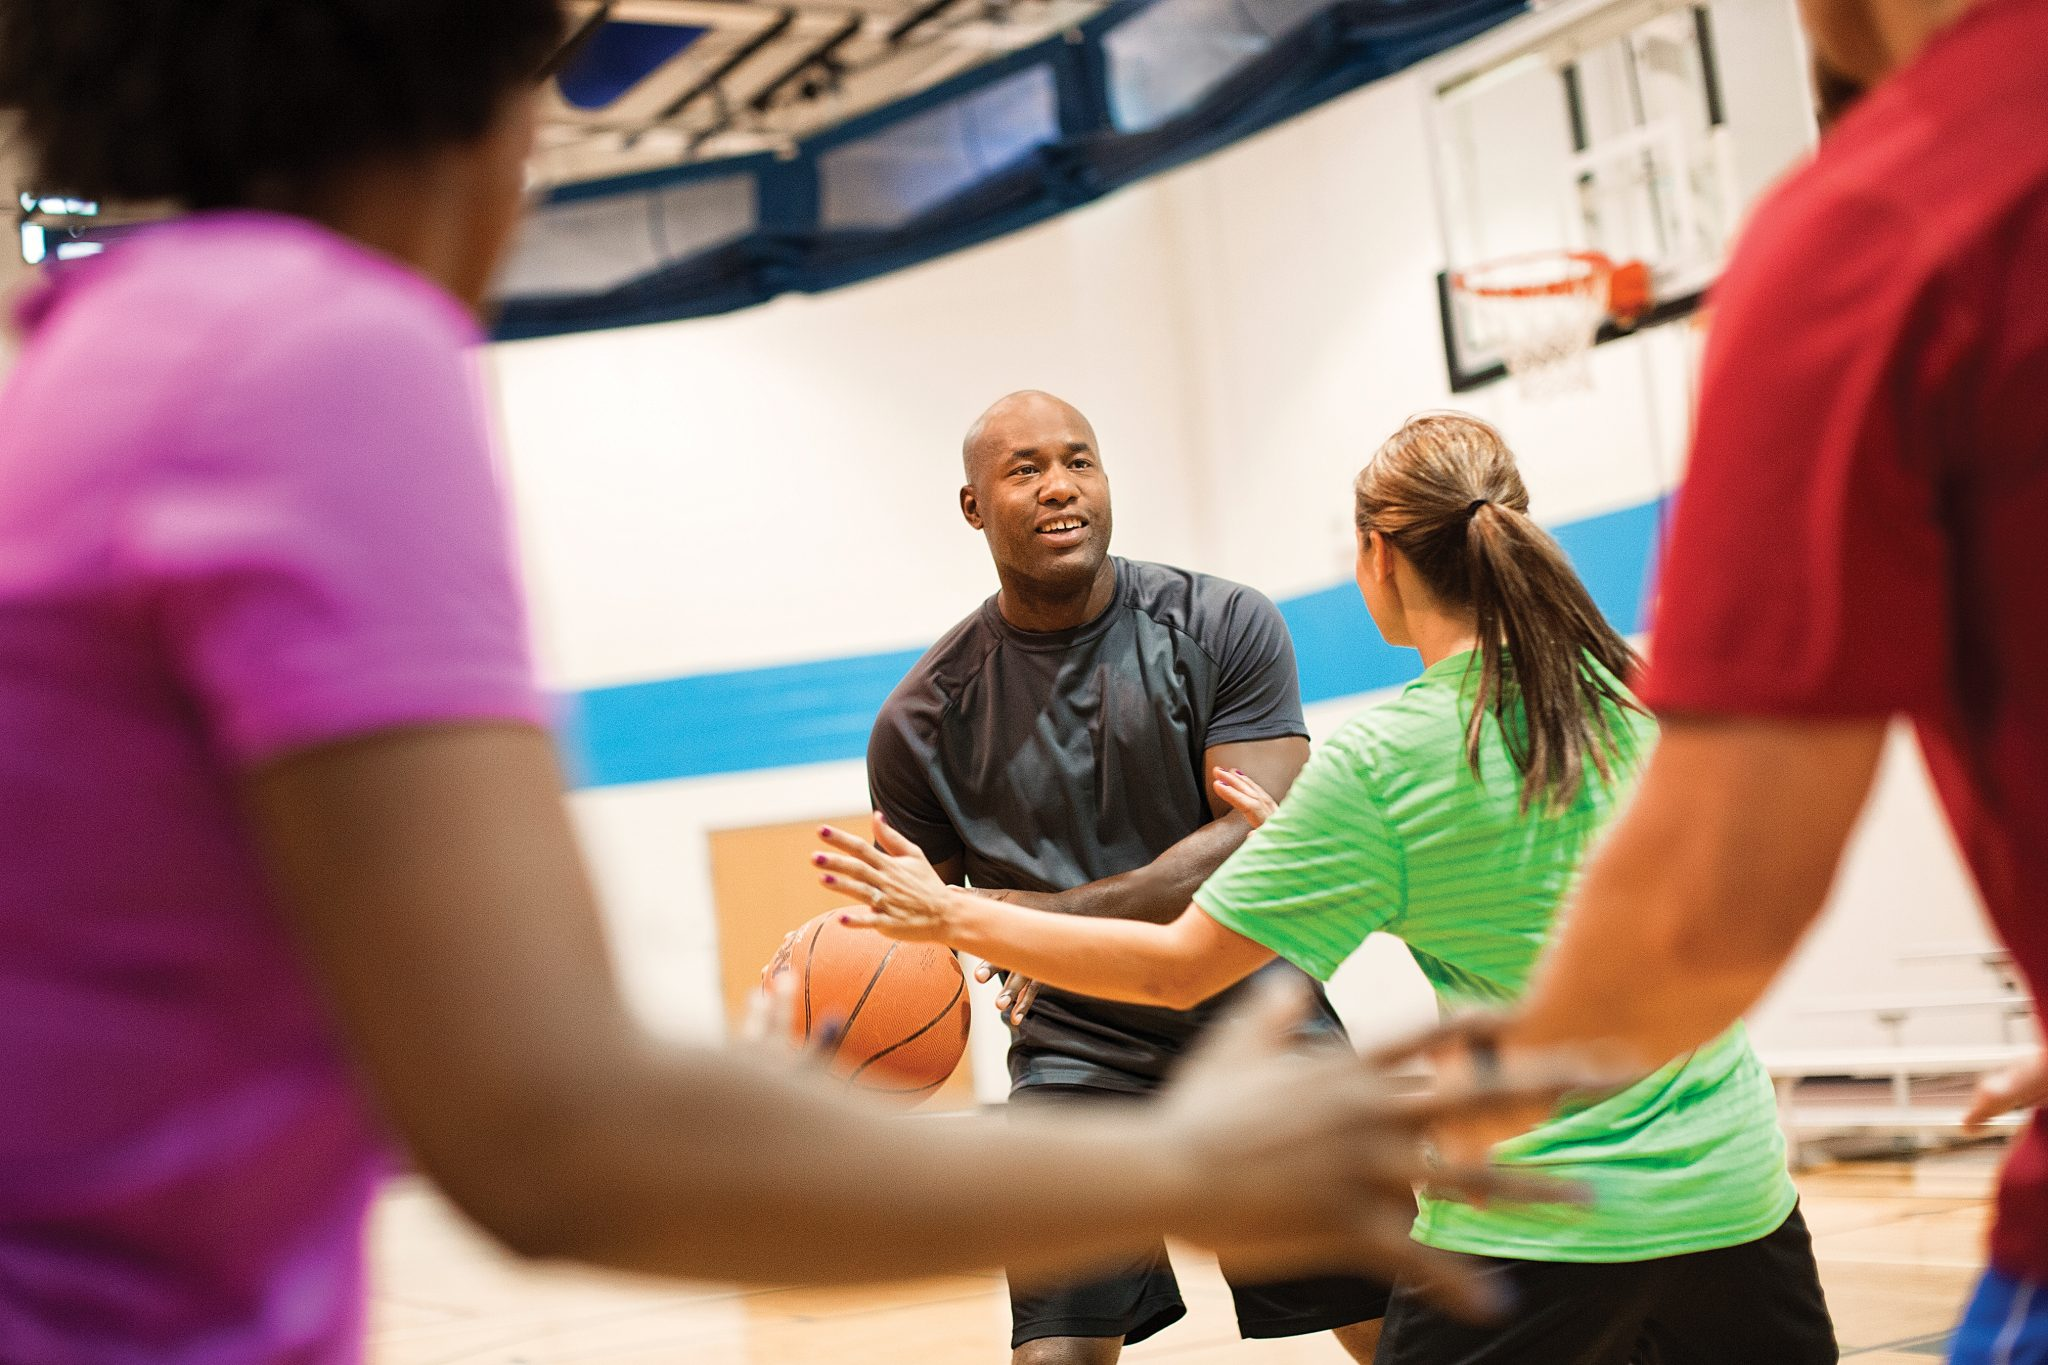 Lafayette Family YMCA | Fitness, Youth Sports, and Childcare